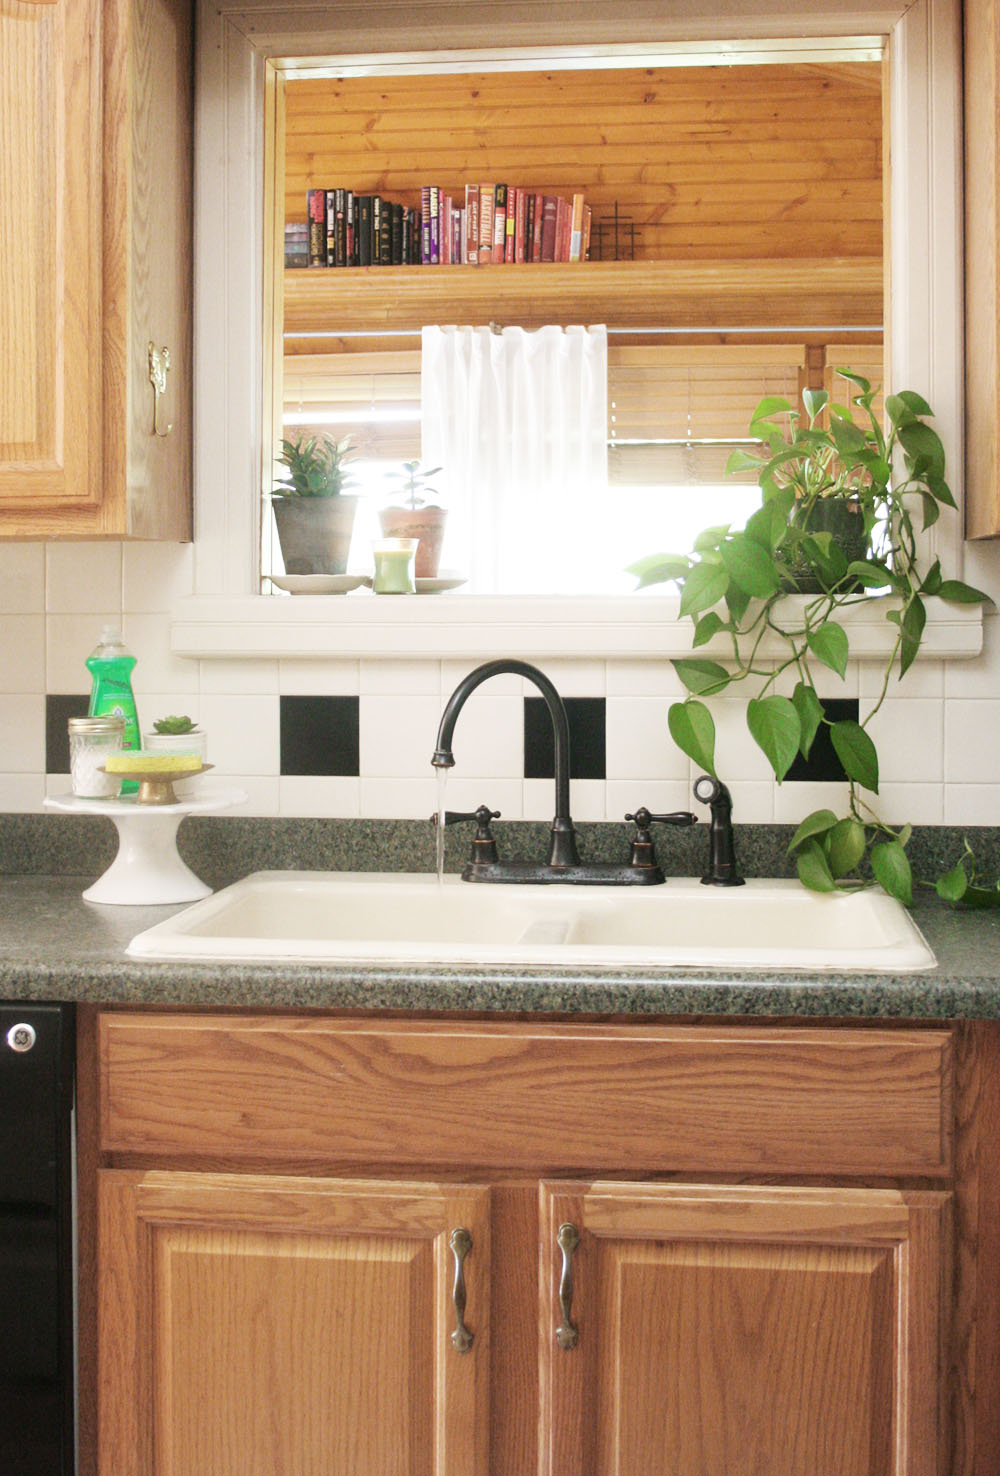 How To Keep The Kitchen Sink Clean And Organized